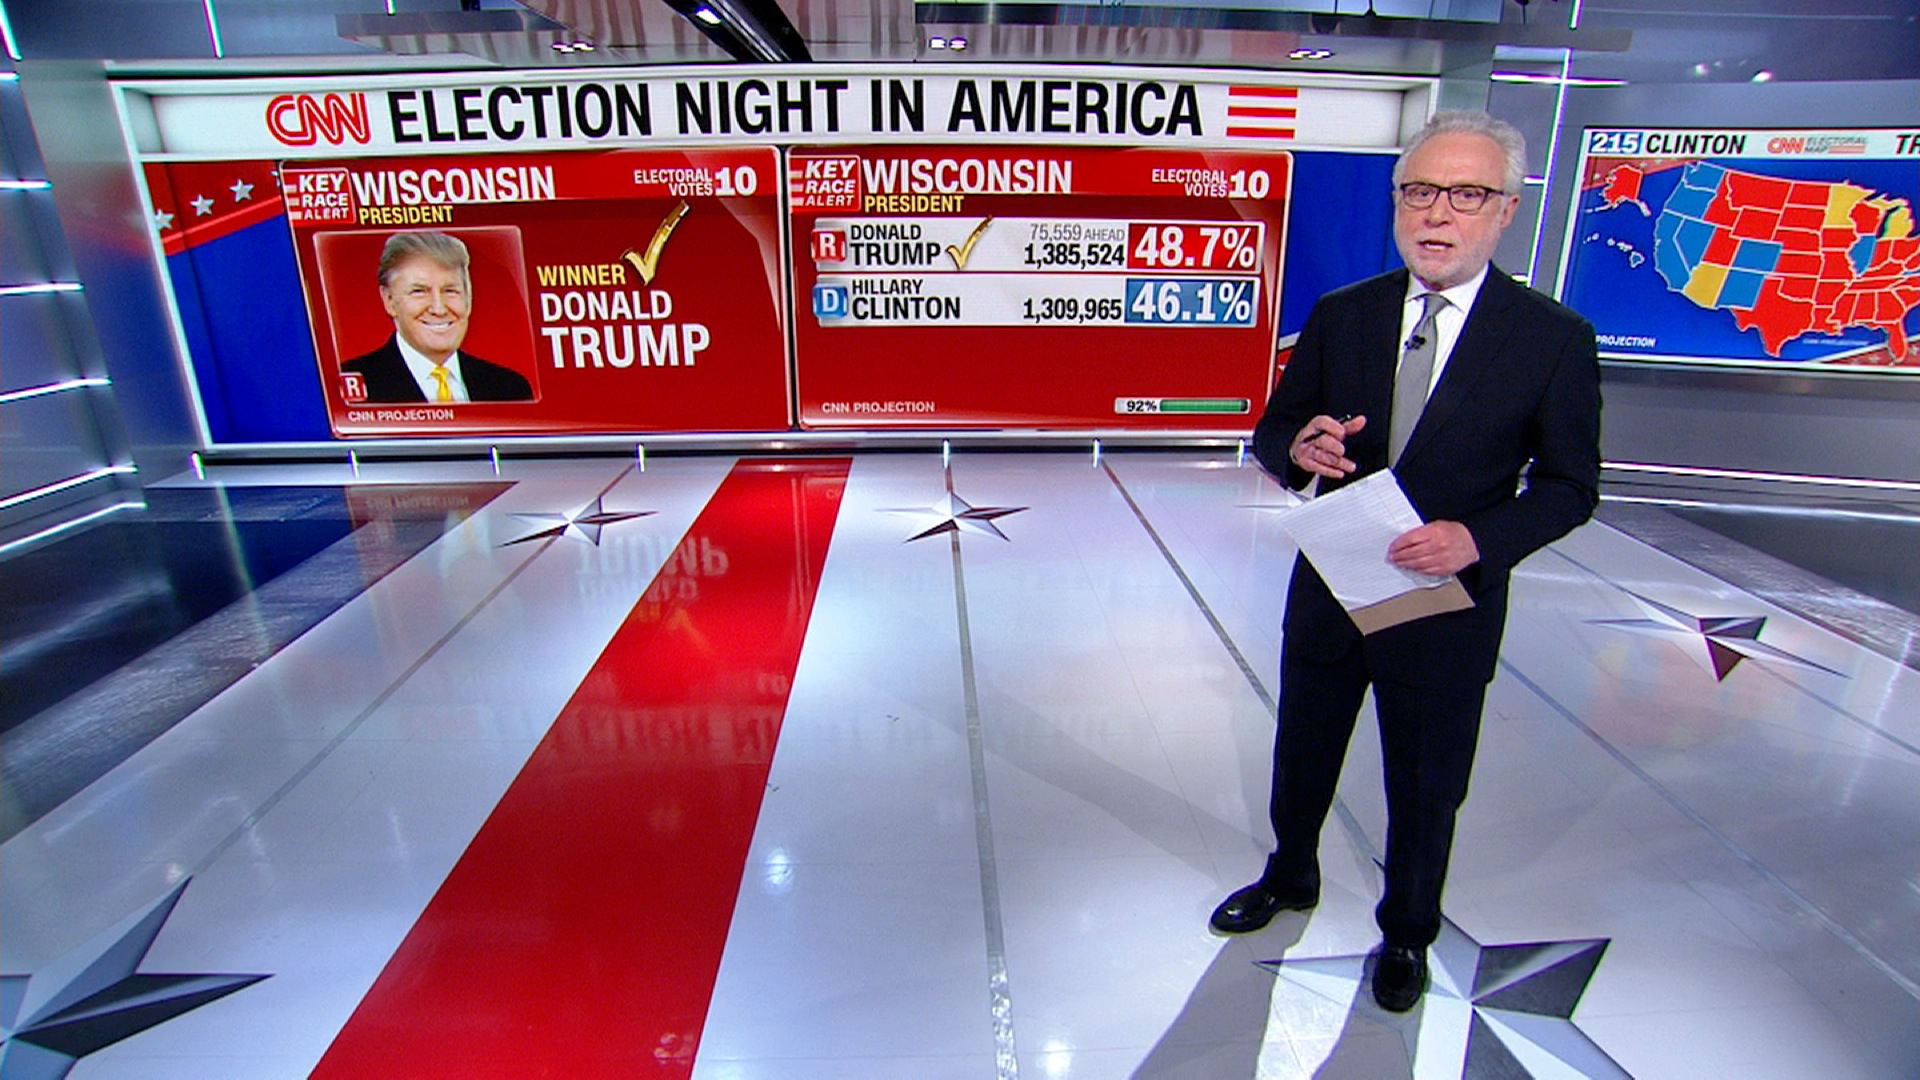 State Calls From Election Night In Seconds CNN Video - 18 hilarious reactions to donald trump winning the election